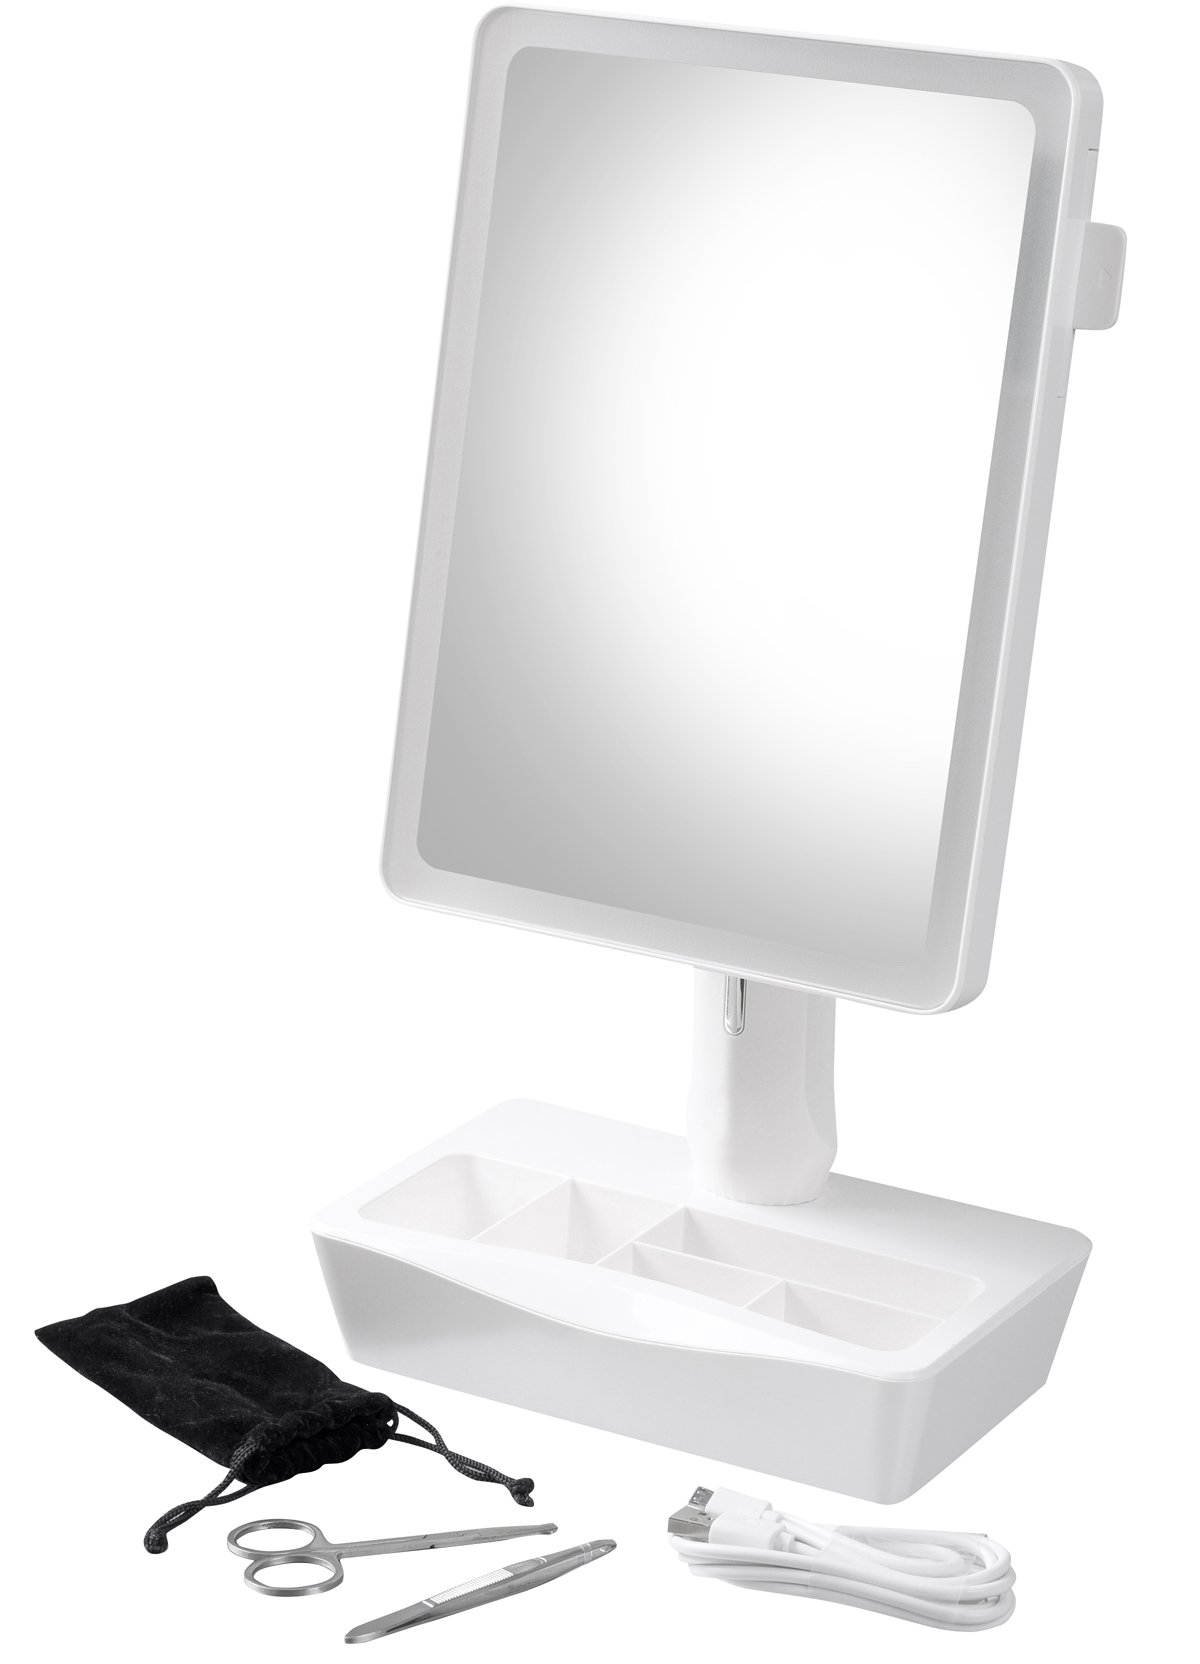 Secura Swiveling Vanity Lighted Makeup Mirror with Adjustable LED Lights, Organizer Base and 10X Slide-out Spot Mirror, Bonus Manicure scissors, tweezers and carrying pouch